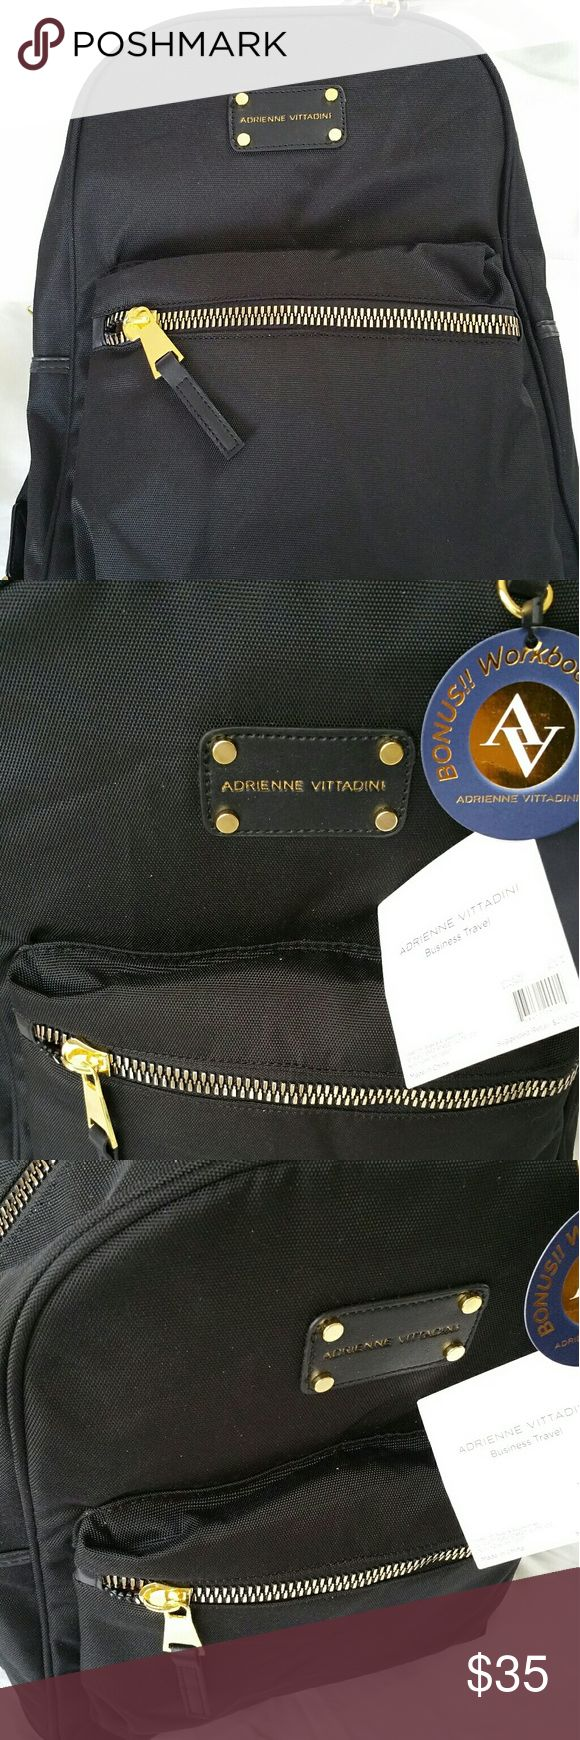 Adrienne Vittadini Black Gold Backpack NWT Black and gold backpack with laptop sleeve Adrienne Vittadini Bags Backpacks